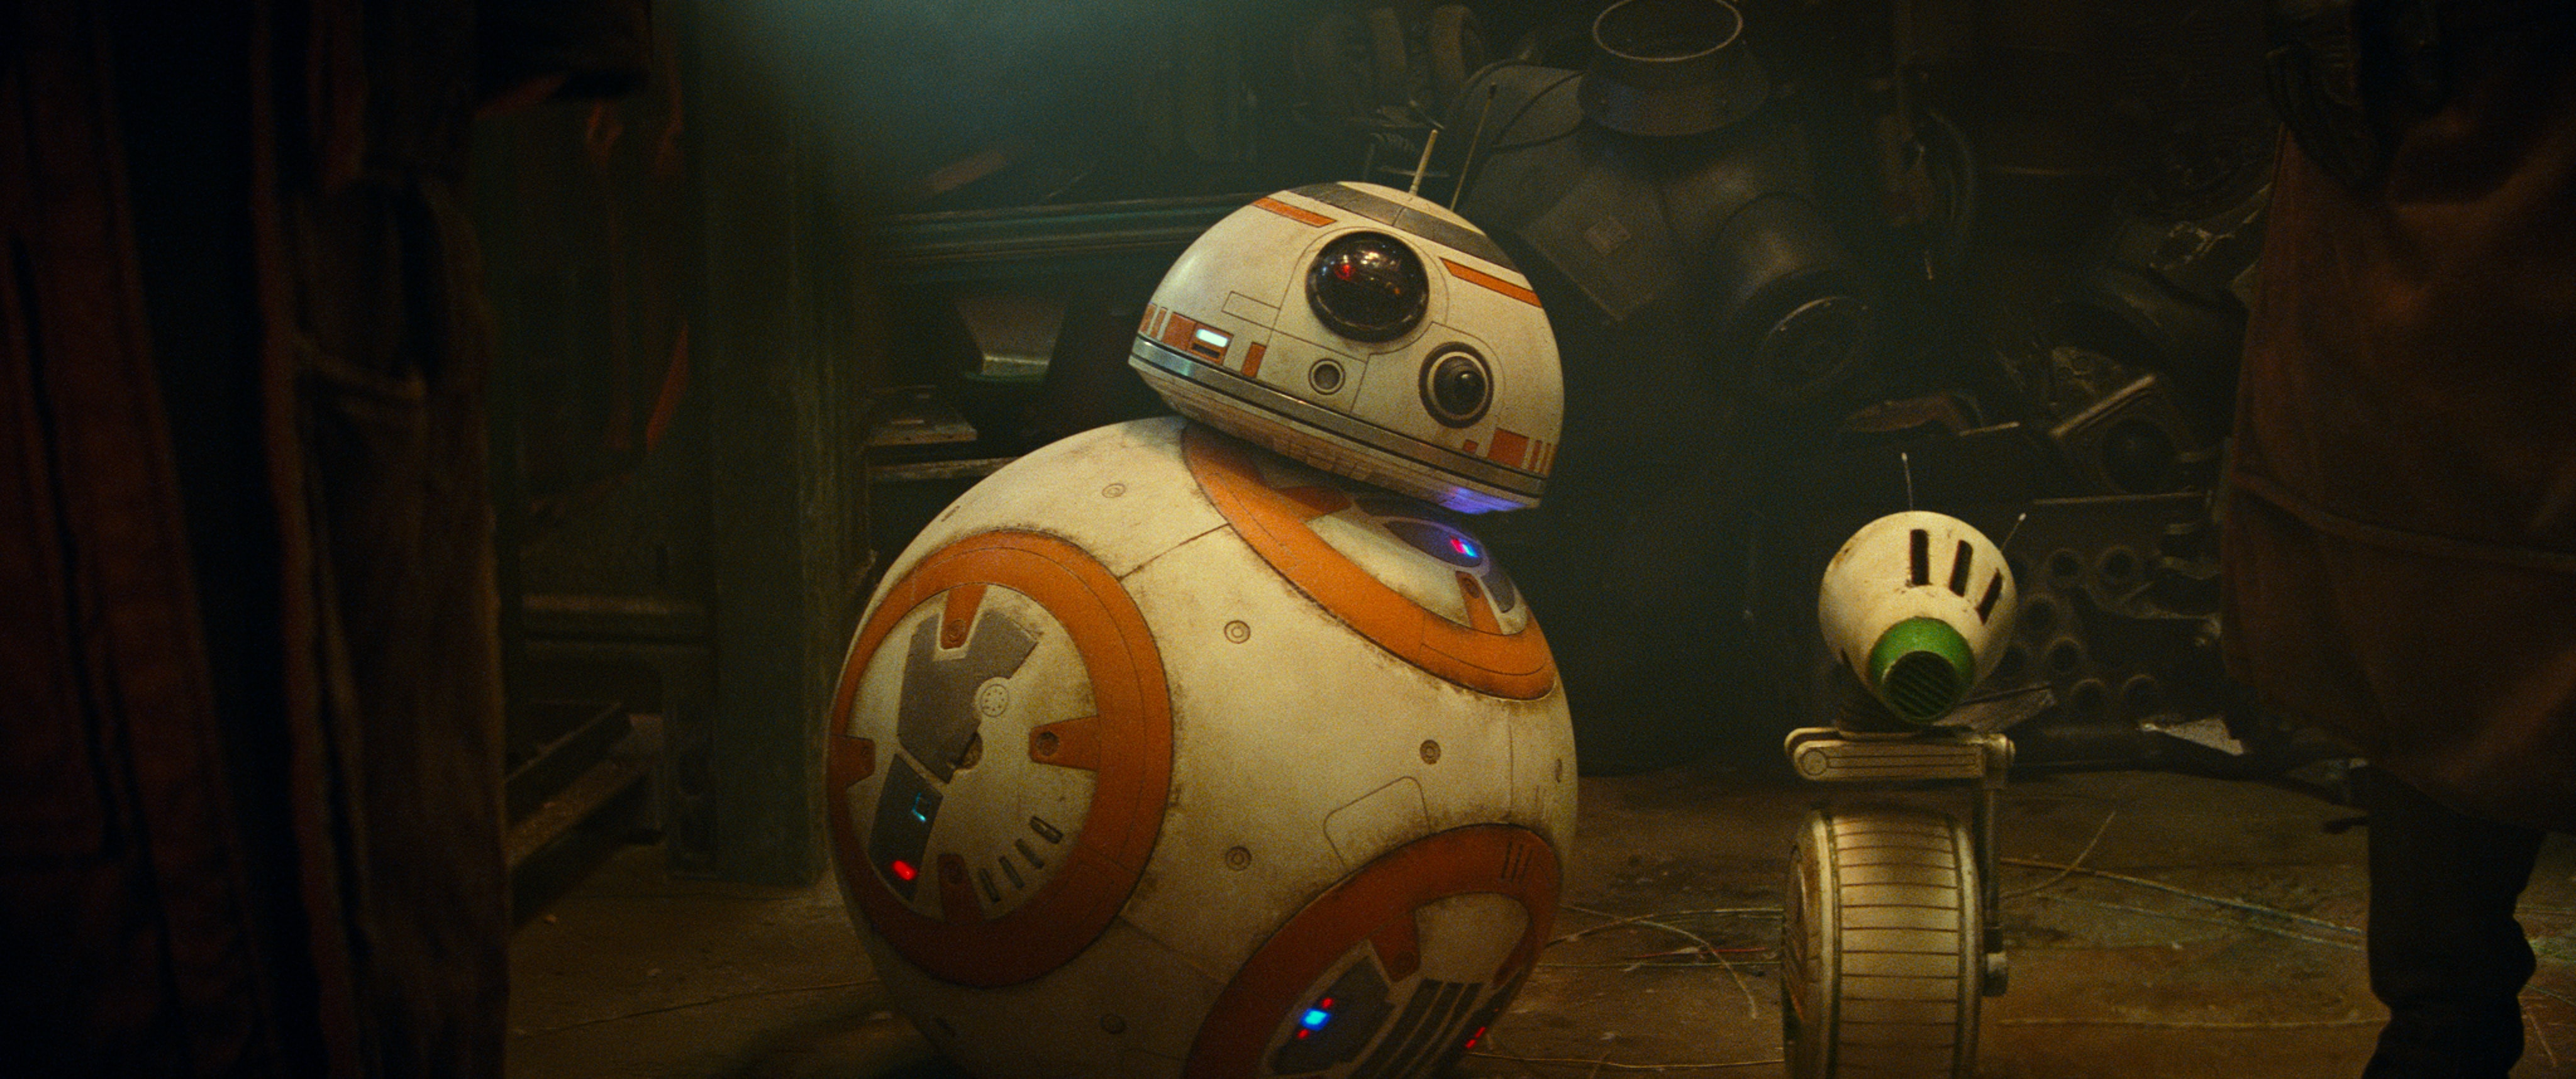 BB-8 and D-O Star Wars Episode IX